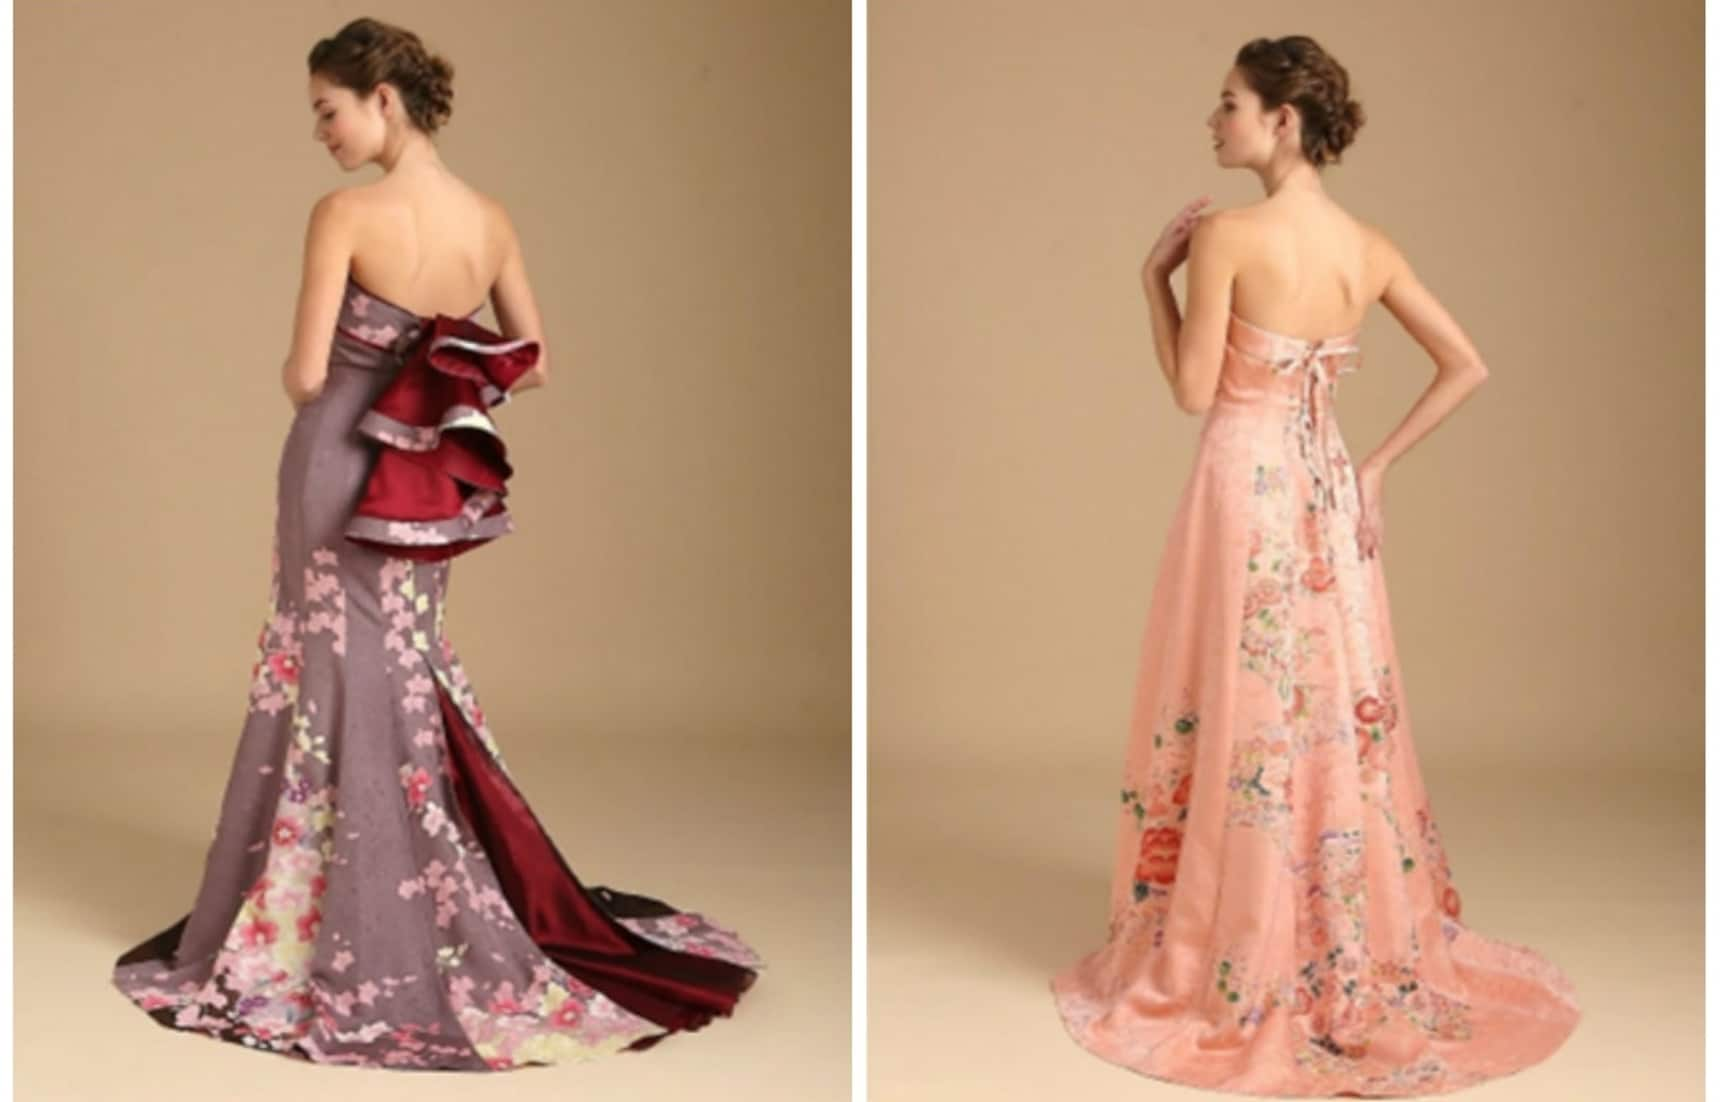 Fashioning a Wedding Dress Out of a Kimono